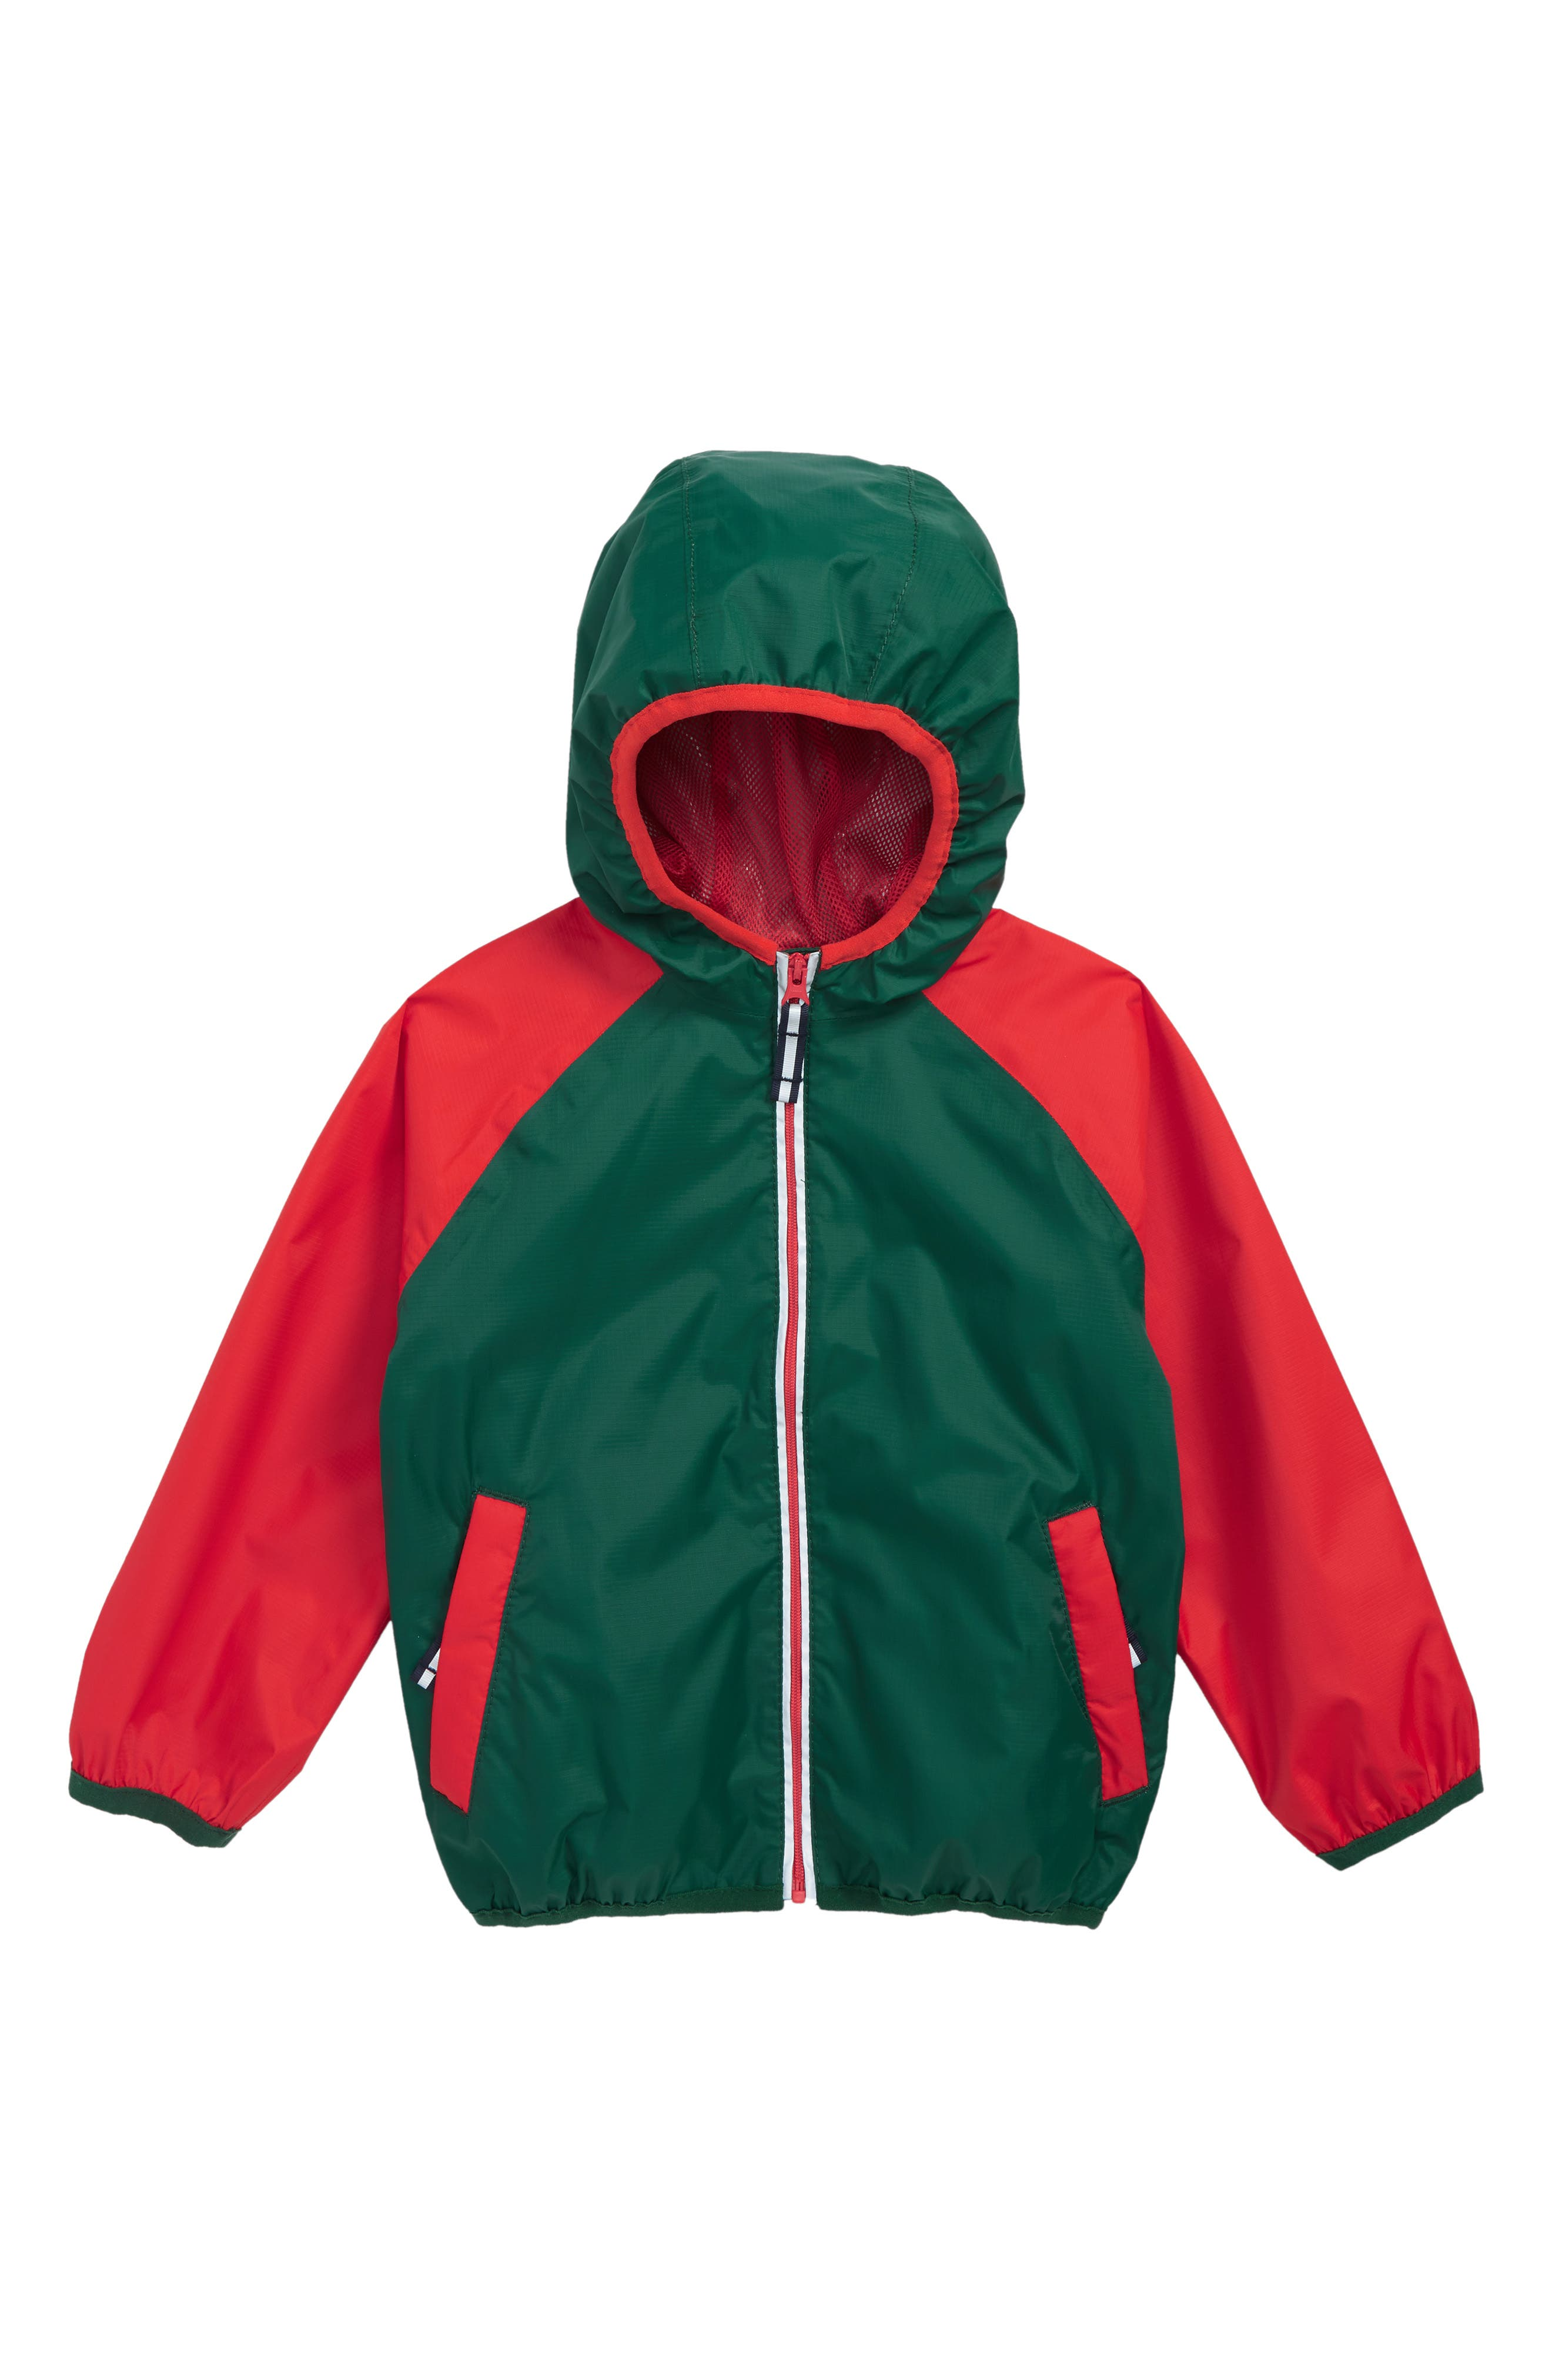 Packaway Rain Jacket,                         Main,                         color, SCOTTS PINE GREEN/ SALSA RED